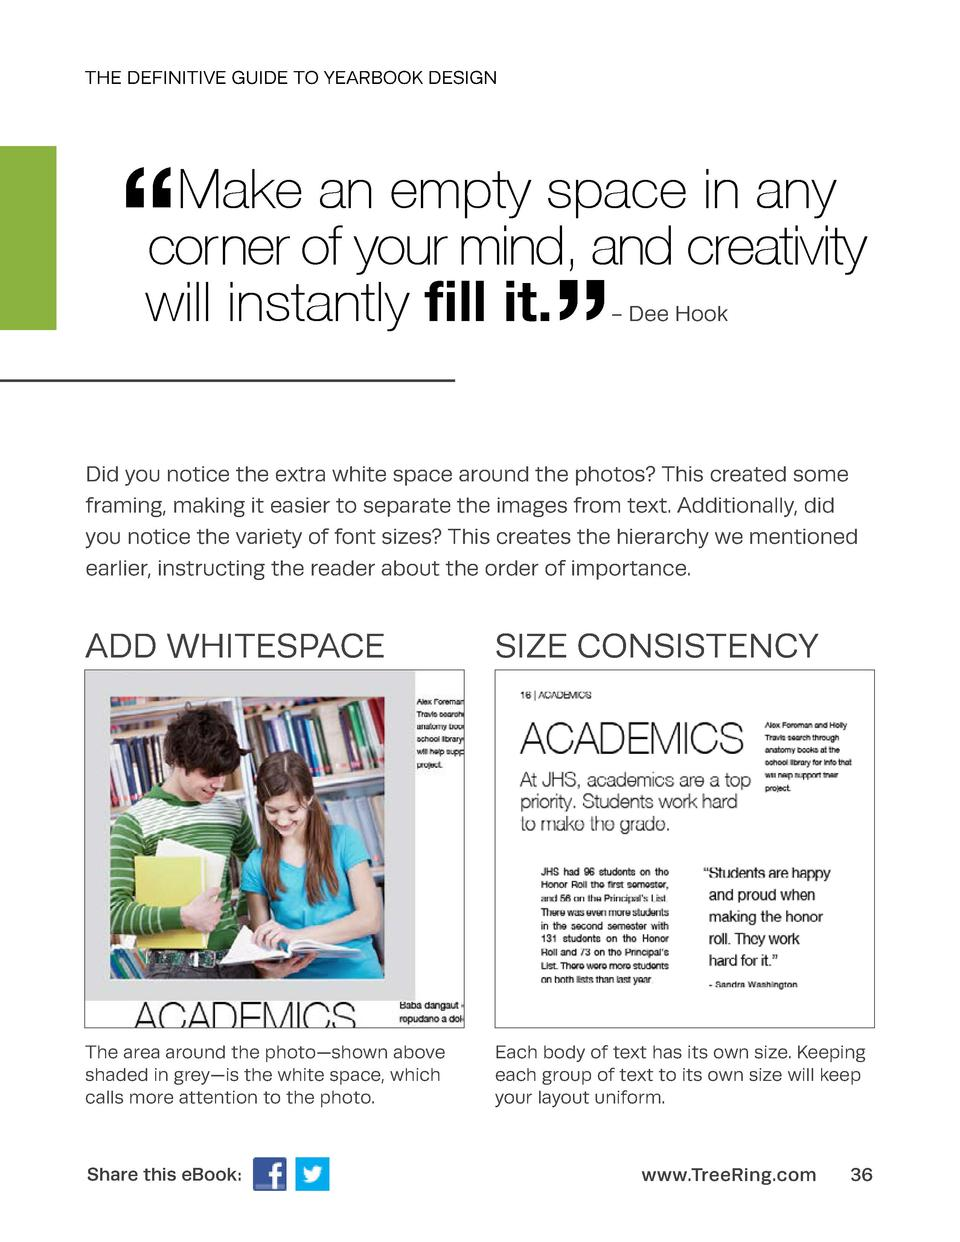 THE DEFINITIVE GUIDE TO YEARBOOK DESIGN       Make an empty space in any corner of your mind, and creativity will instantl...